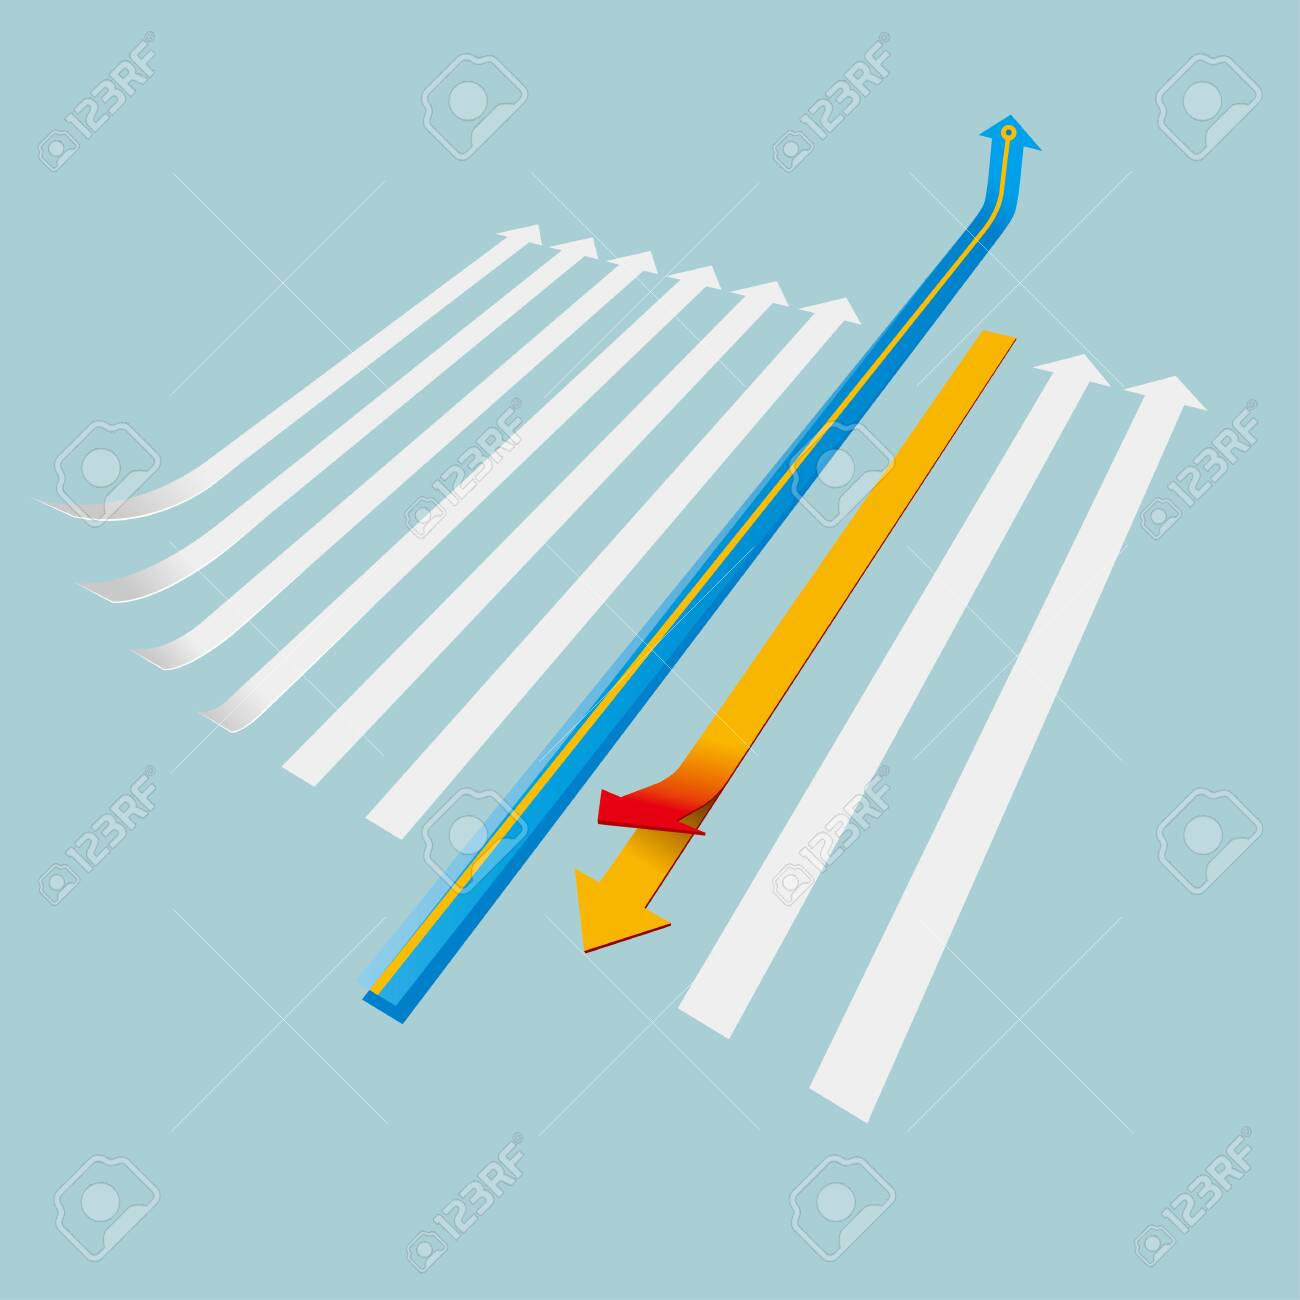 Creative design of the arrow. Isolated on blue background. - 131437711